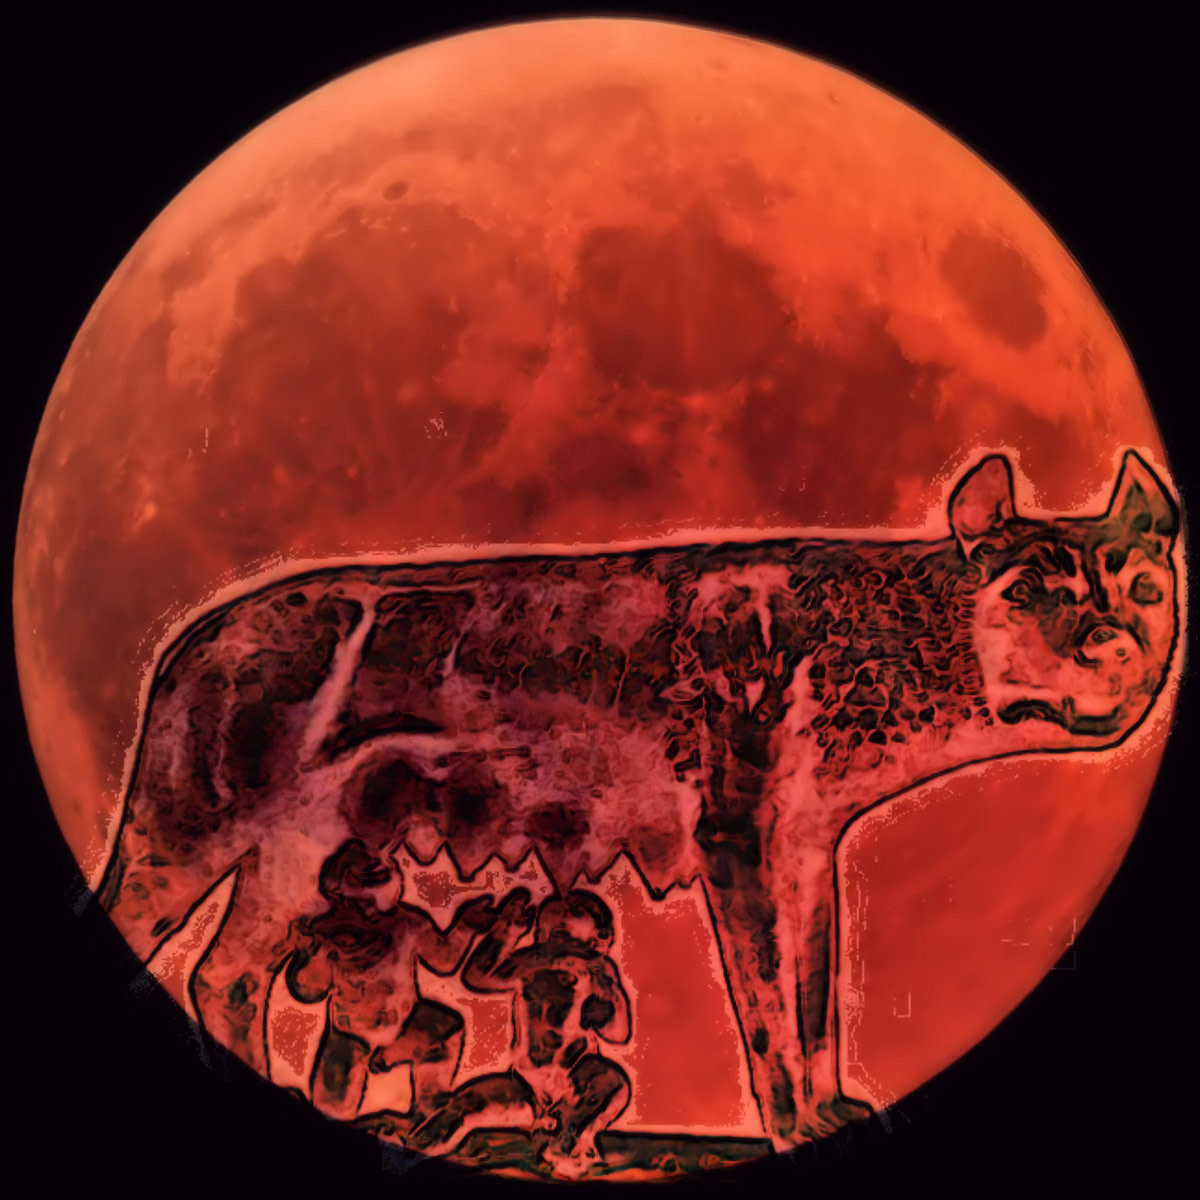 Trump Super Wolf Blood Moon, lead-in to 5th sign